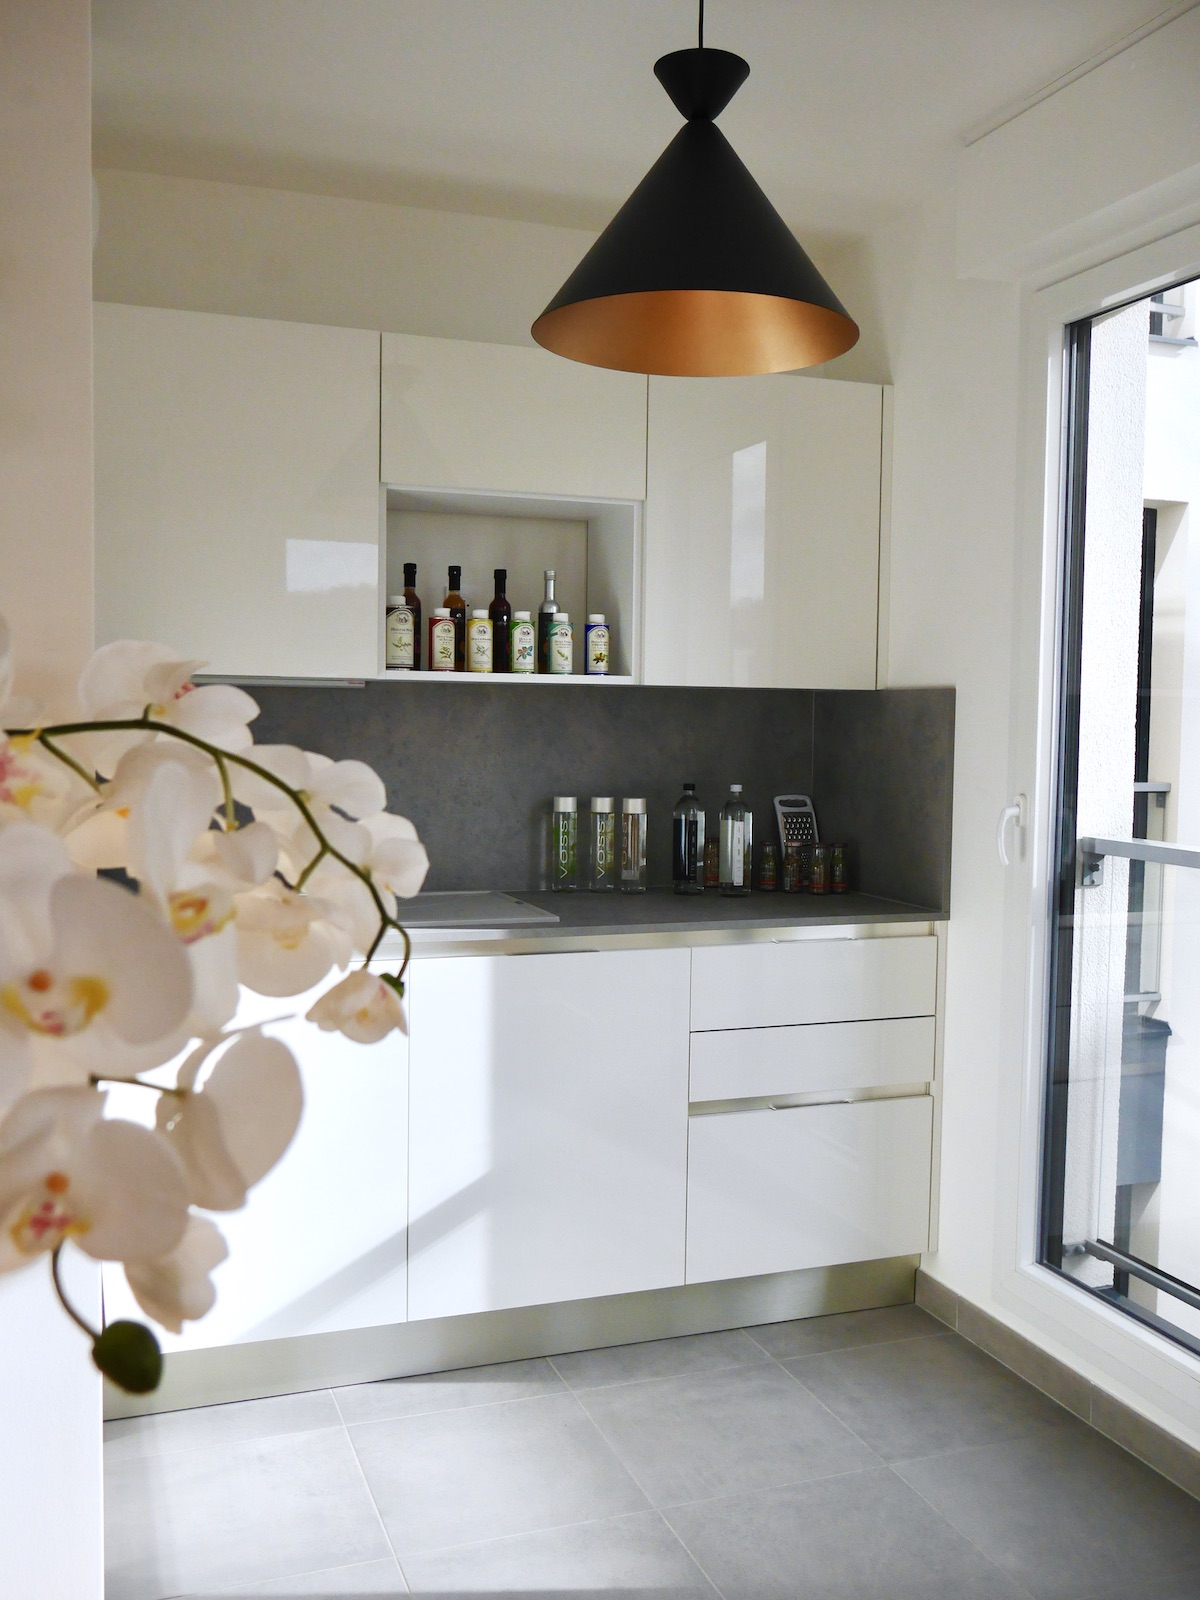 idylle agencement cuisine appartement neuf rueil blanche grise